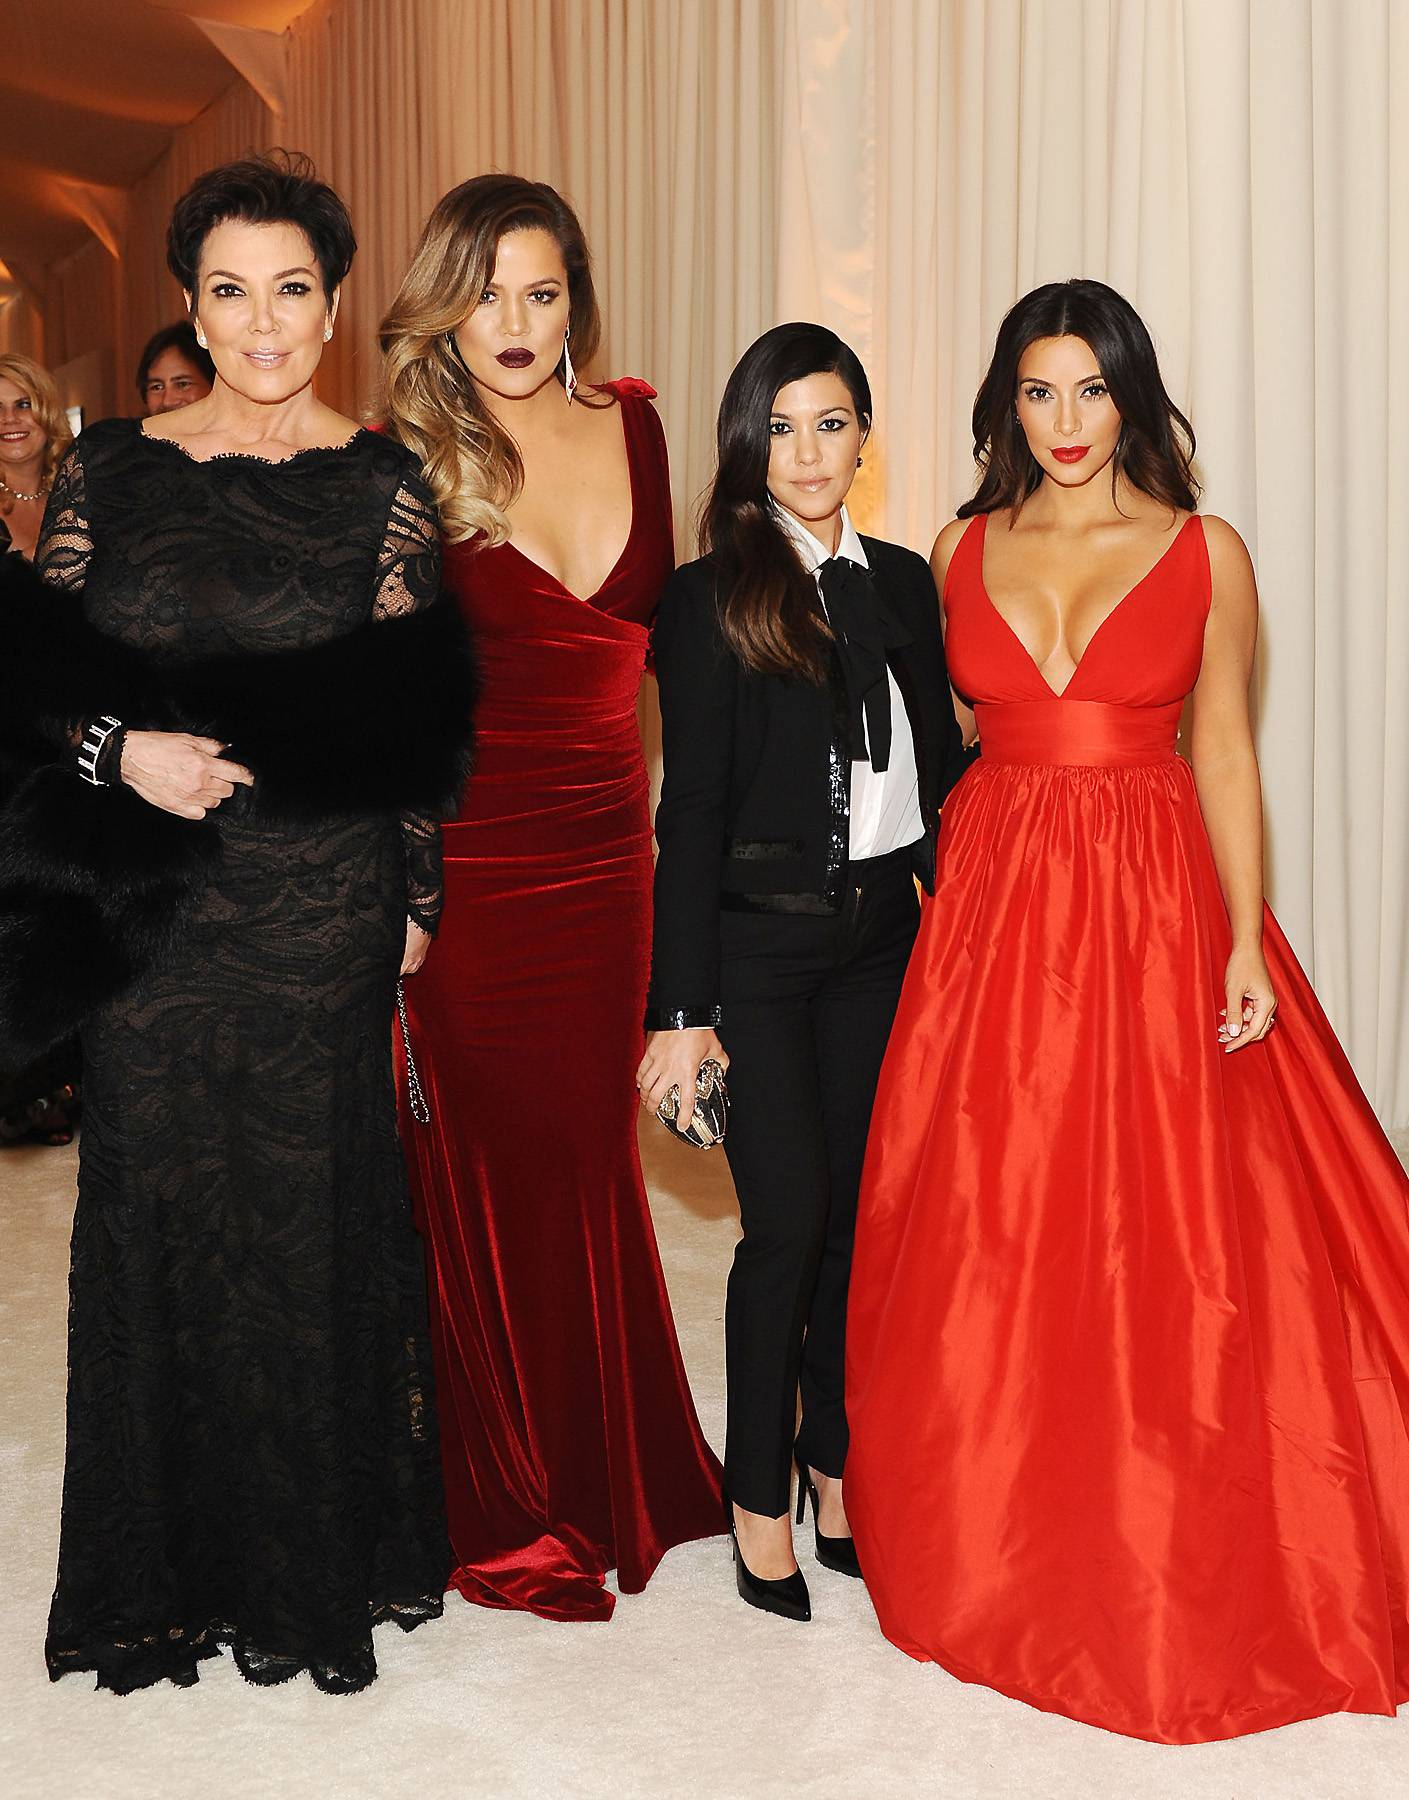 """Pregnant Kardashian? - There's a new KUWTK trailer that depicts a pregnancy test that appears to read """"pregnant,"""" so now speculation is running rampant about which Kardashian might have a bun in the oven. Khloe gave us a hint, """"I think we can rule miss menopause out of the equation,"""" she posted on Instagram. Duh! But seriously, who do you think it is?   (Photo: Stefanie Keenan/Getty Images for Chopard)"""